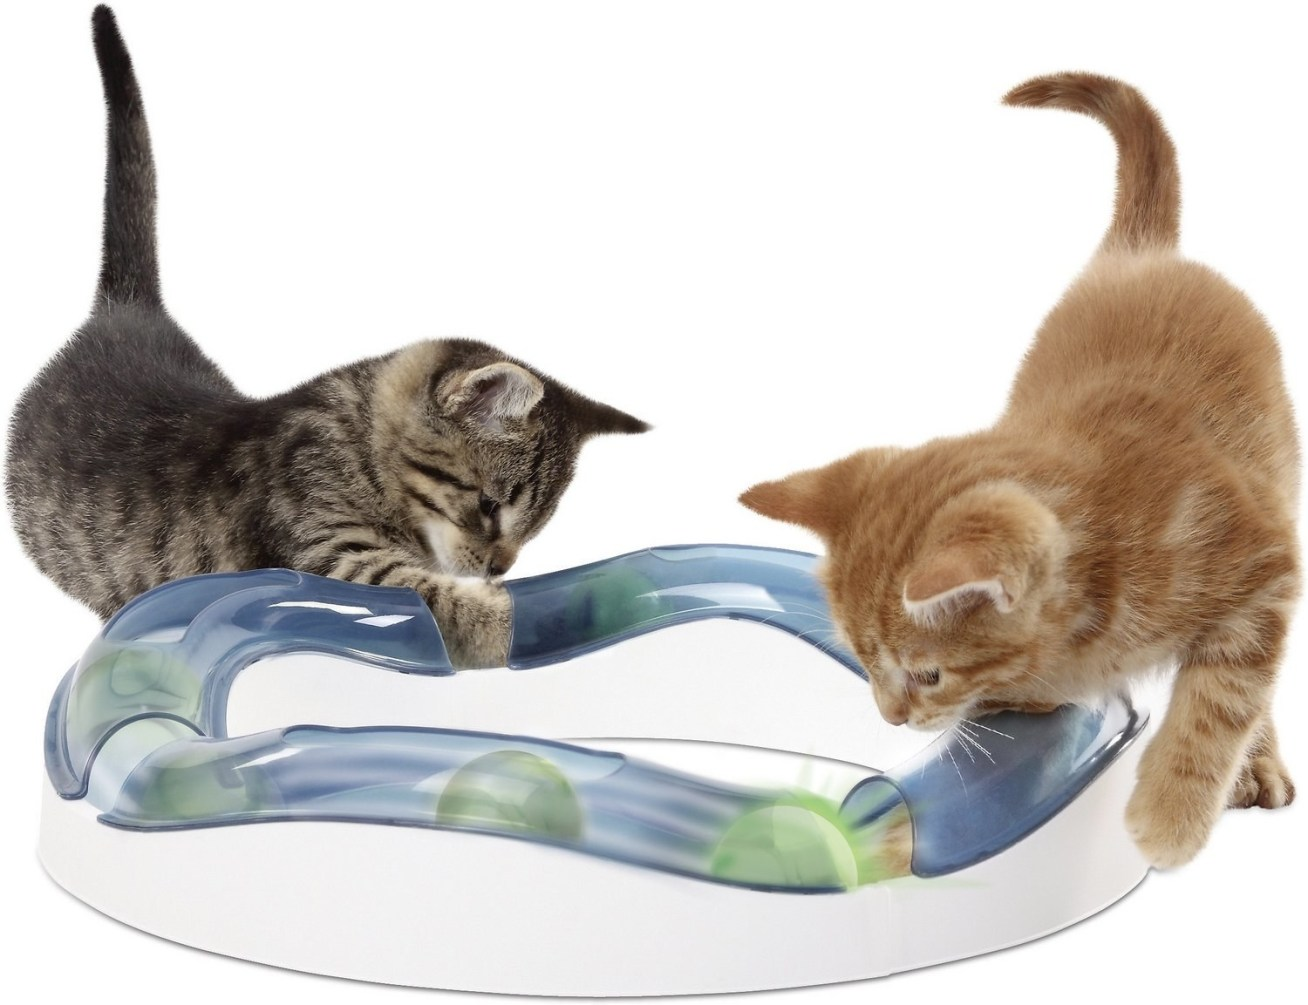 """If you're a cat parent, you know what a big deal that really is. Promising review: """"My two young cats seem to always quickly lose interest in the toys I buy them. However they can't seem to resist this toy whenever they walk by! It's so gratifying to hear them playing with it throughout the day. I will be buying additional pieces to change the shape of the track for more fun. This is top of my list of favorite purchases so far."""" —Walmart CustomerPrice: .38"""